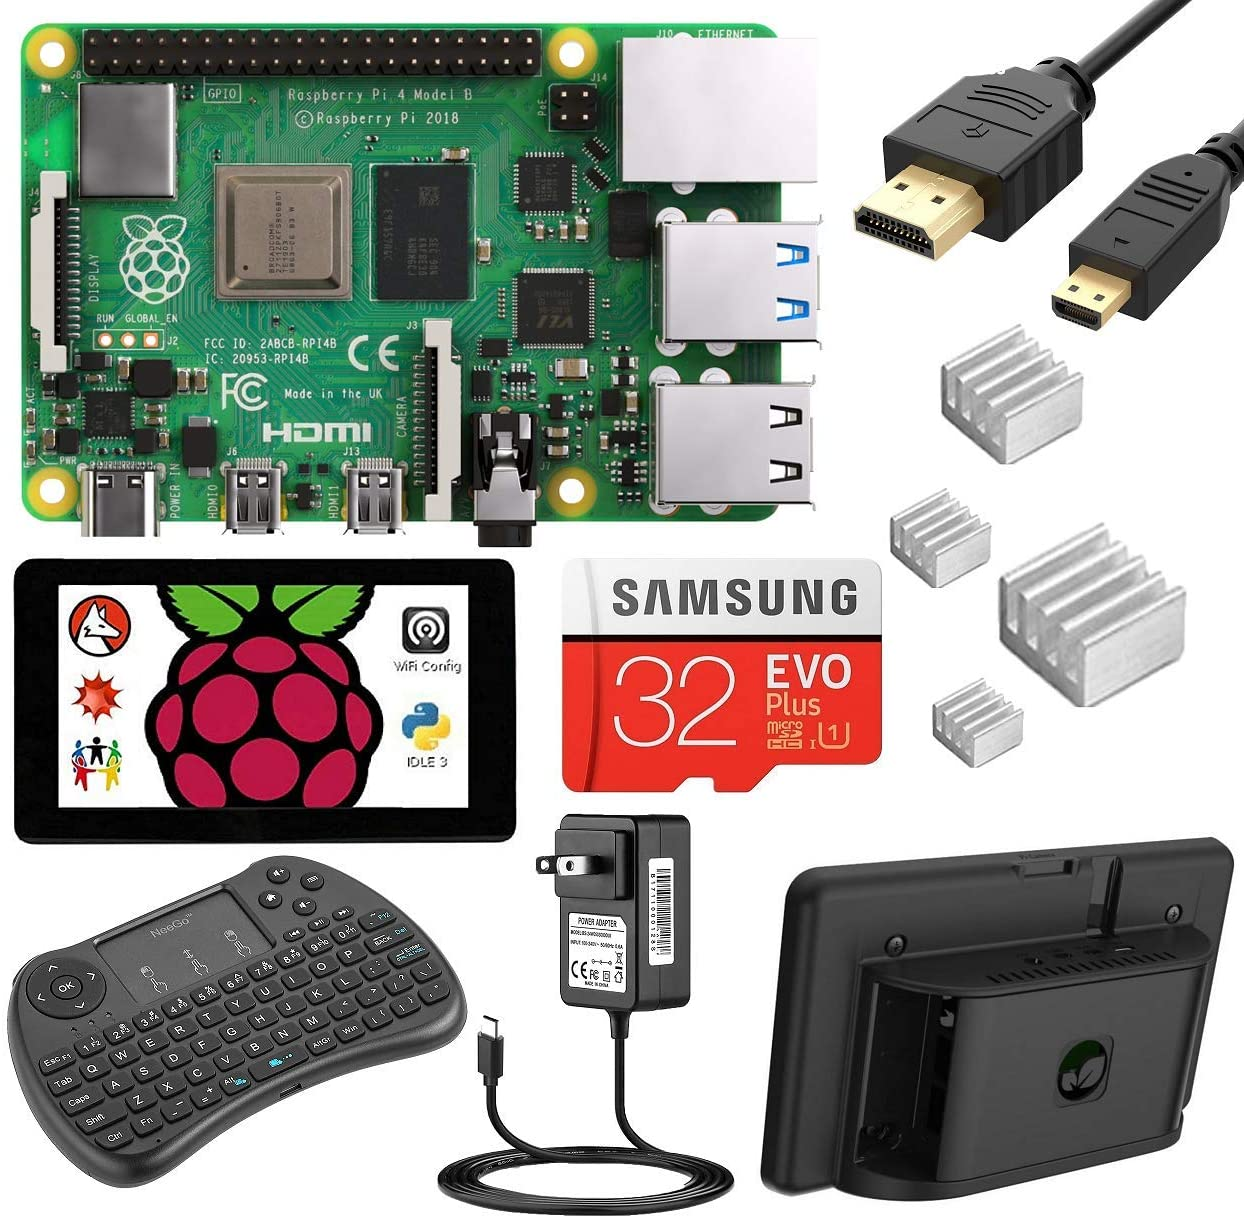 NEEGO Raspberry Pi 4 4GB Complete Kit, with Touchscreen, Keyboard and Case - 4GB RAM